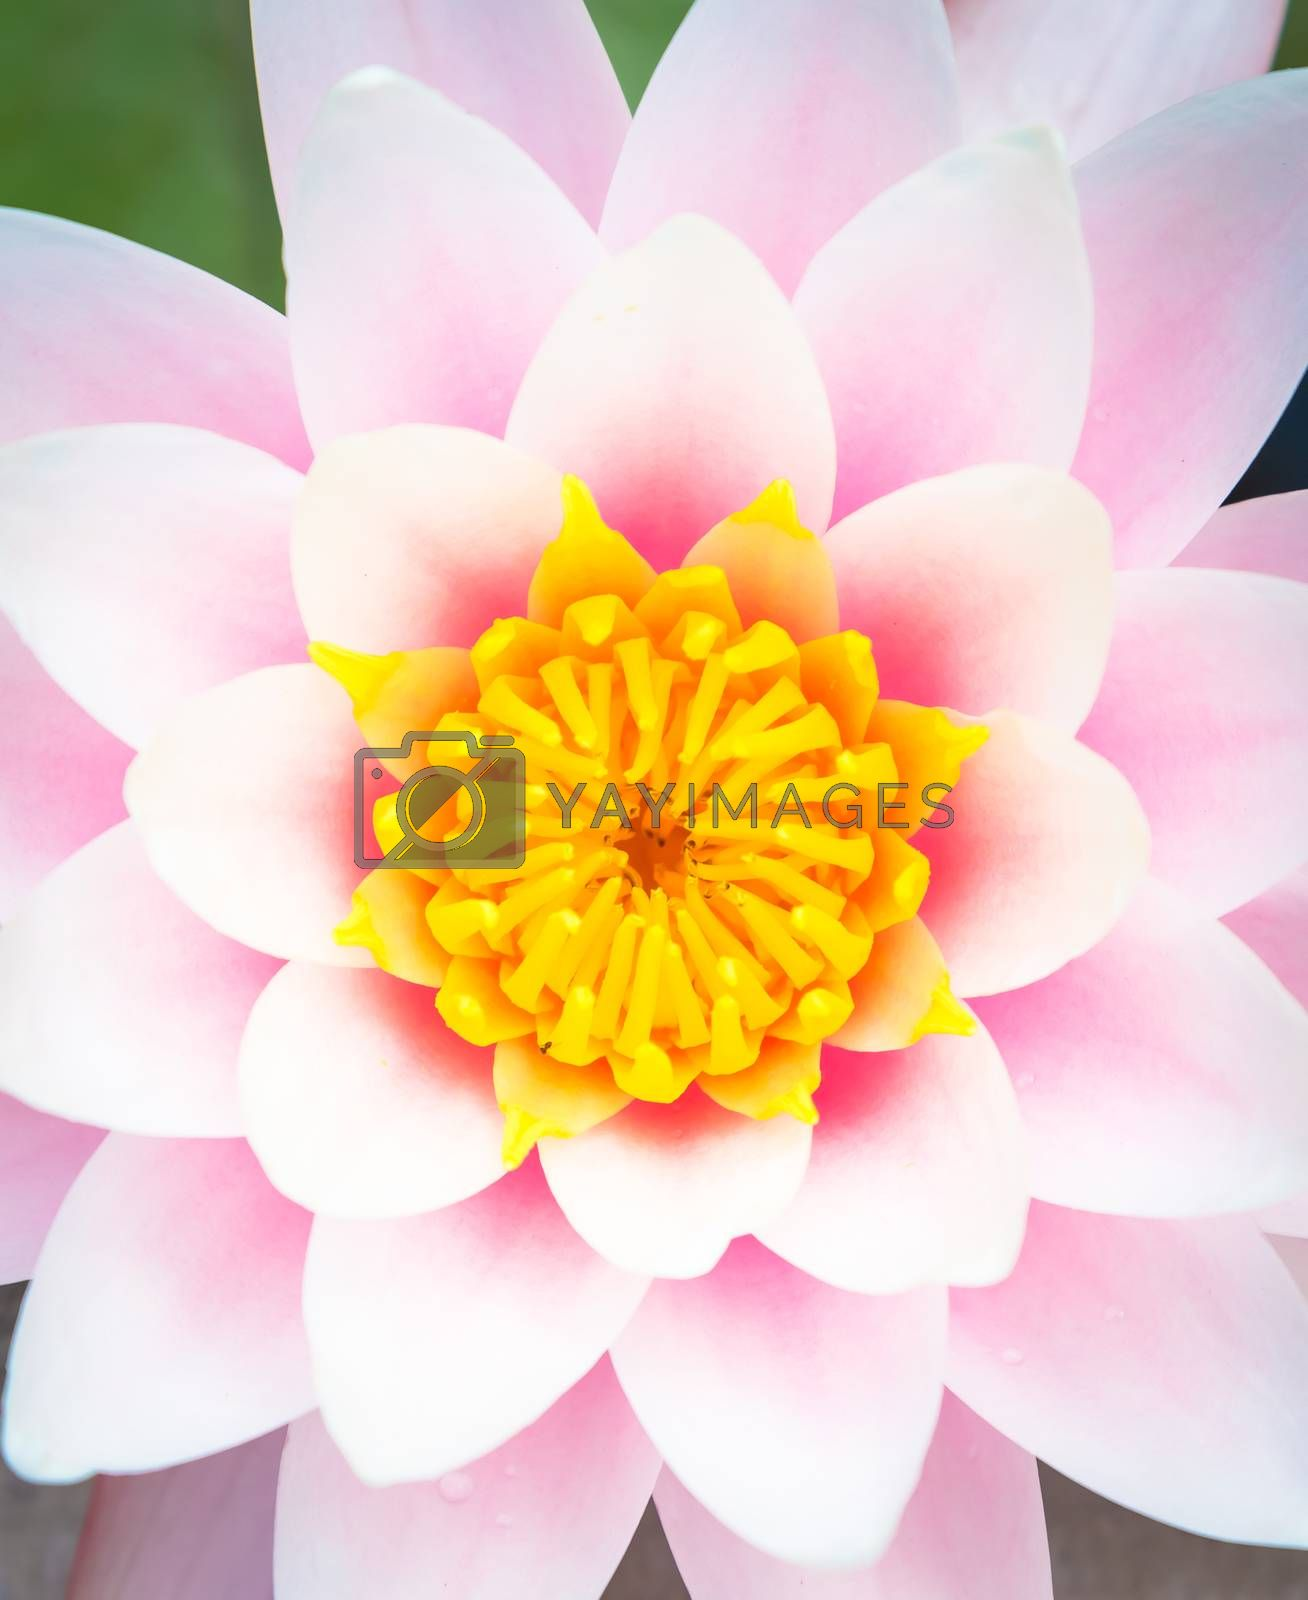 This is a living water lily (no studio photo) with natural sunlight. Useful for romantic and calm concepts.